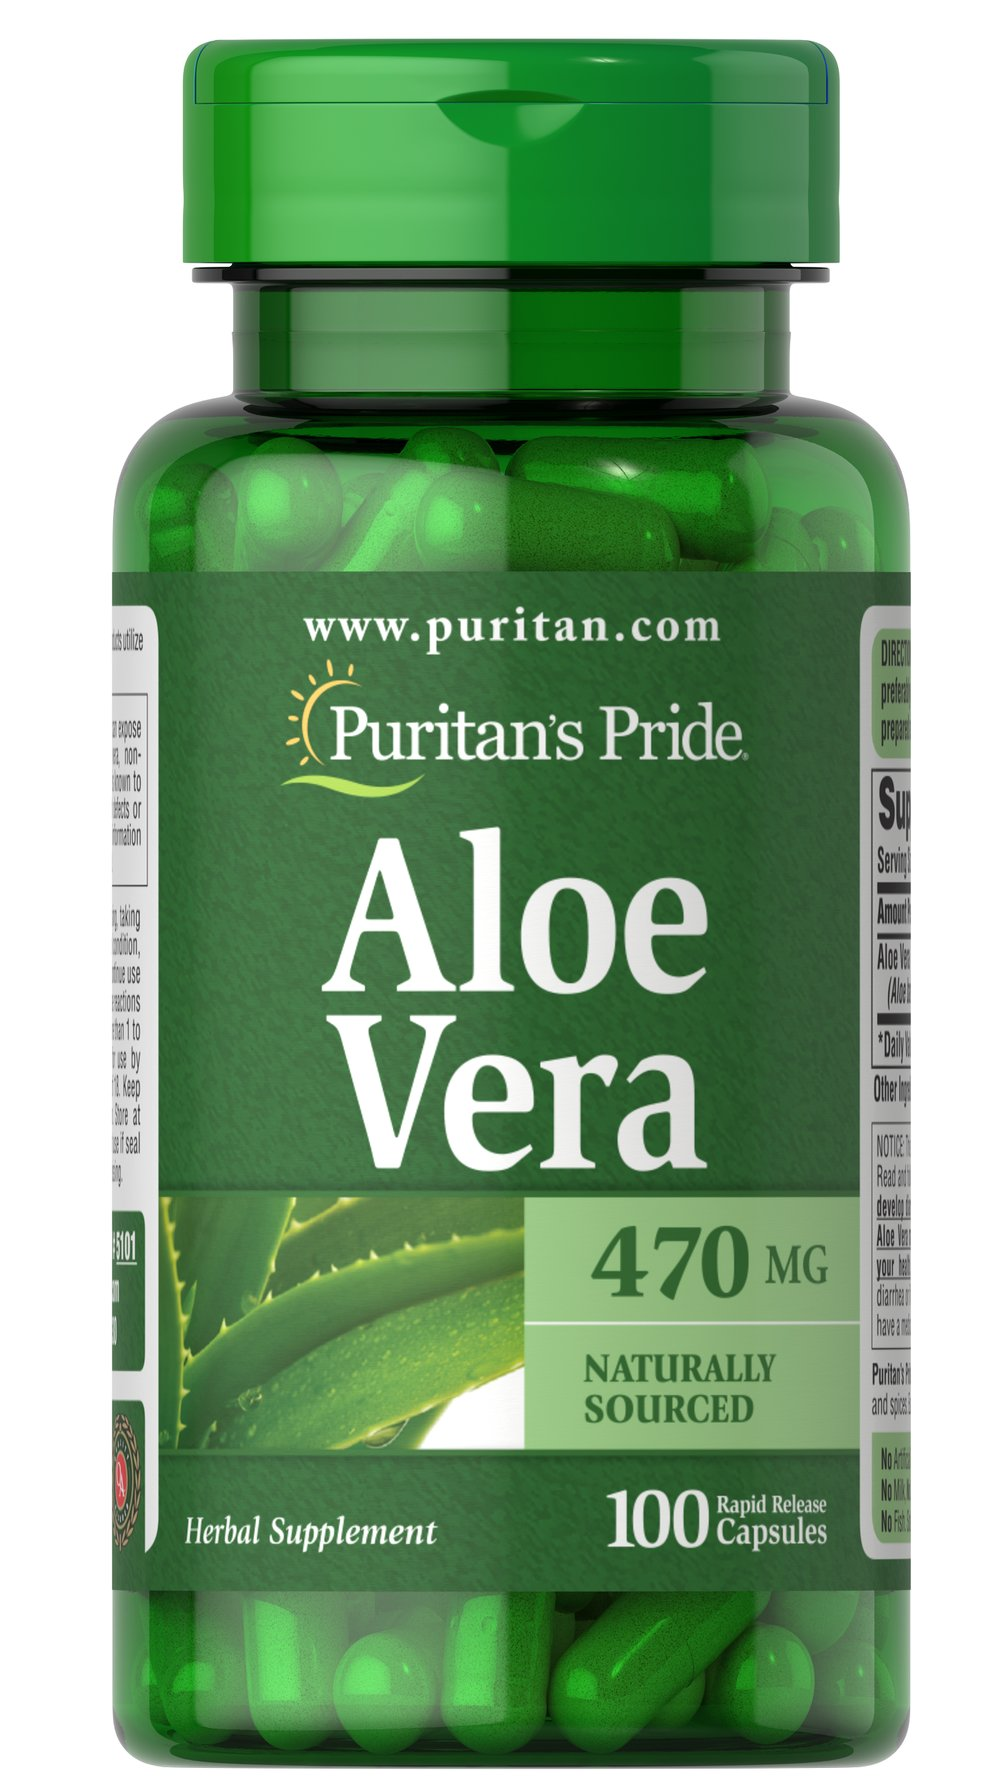 Aloe Vera 470 mg <p>Serves as an aid for healthy digestion**</p><p>Plays a role in the well-being of the body**</p><p>Convenience of capsules, softgels and liquids is unsurpassed</p><p>Has been used and trusted for centuries</p><p>Aloe Vera  has been shown to support a healthy digestive system.** Its popularity as a digestive aid makes it an excellent addition to your daily eating plan.**</p> 100 Capsules 470 mg $12.29